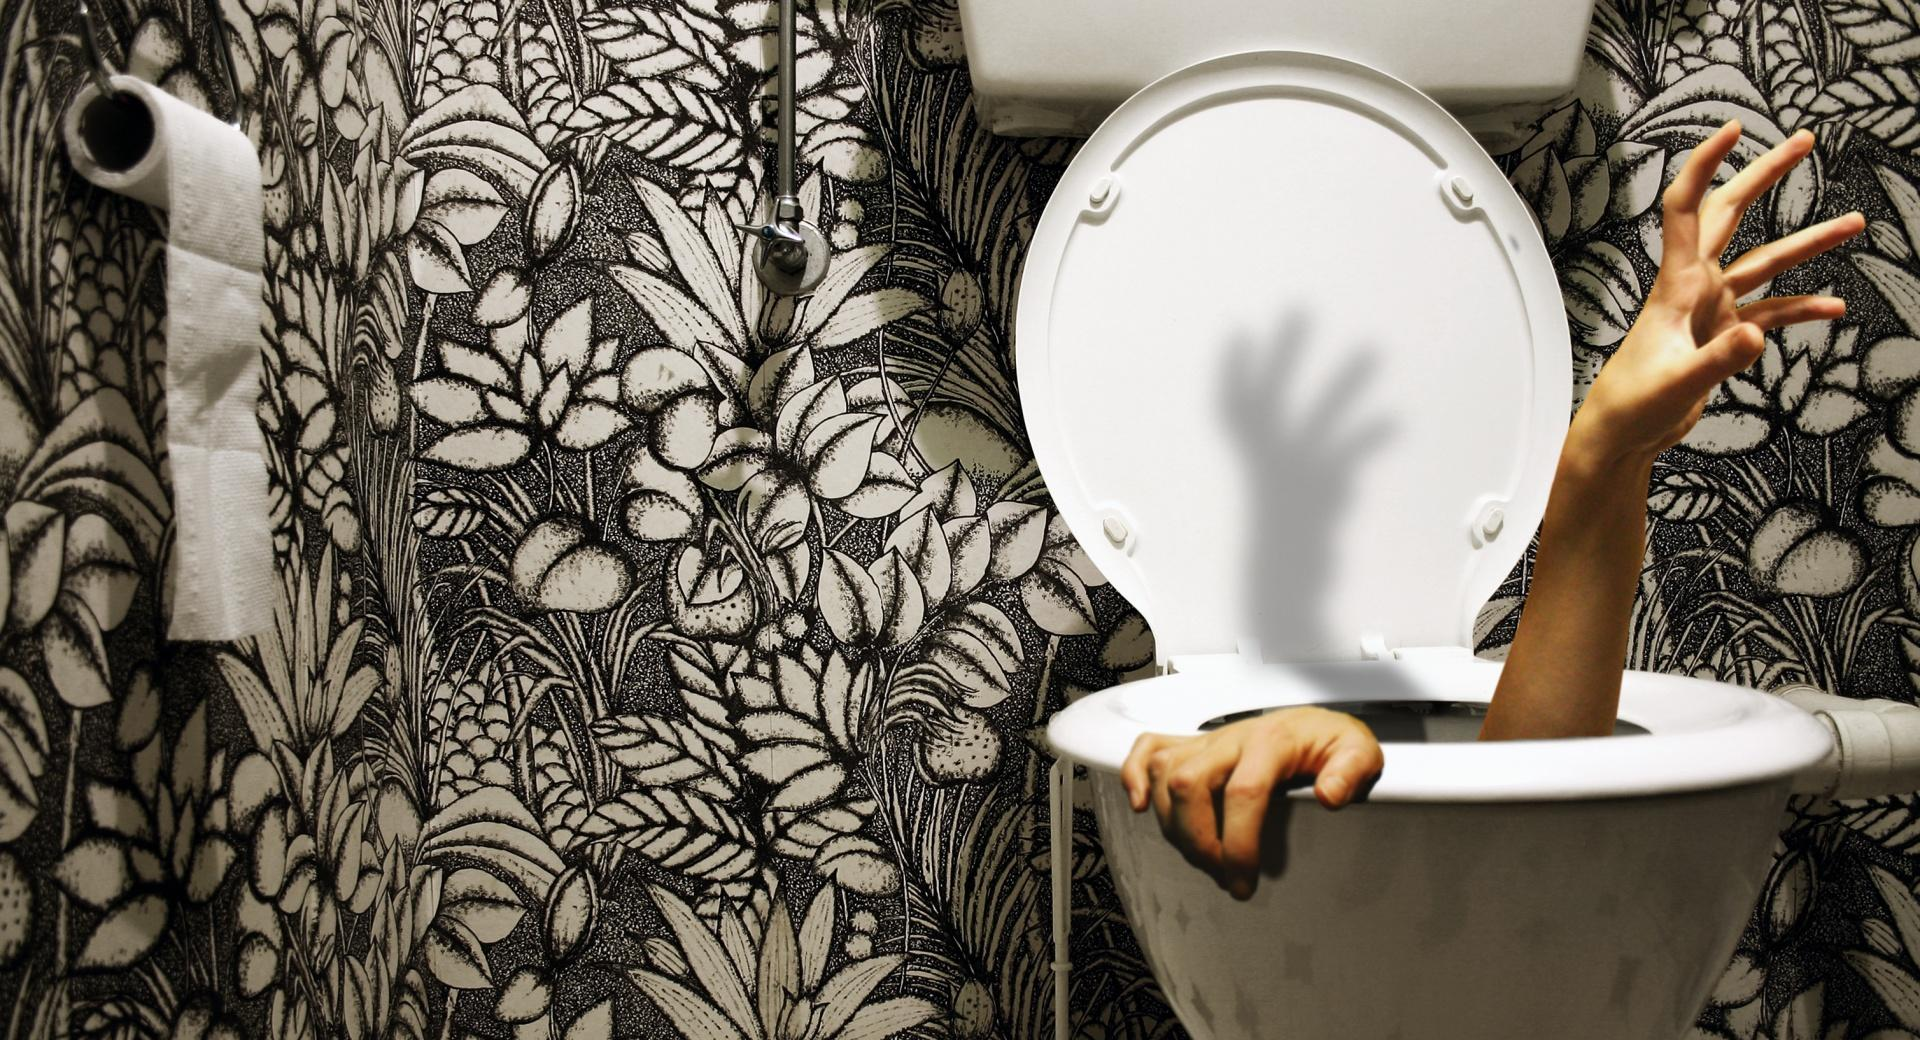 Zombie Toilet wallpapers HD quality